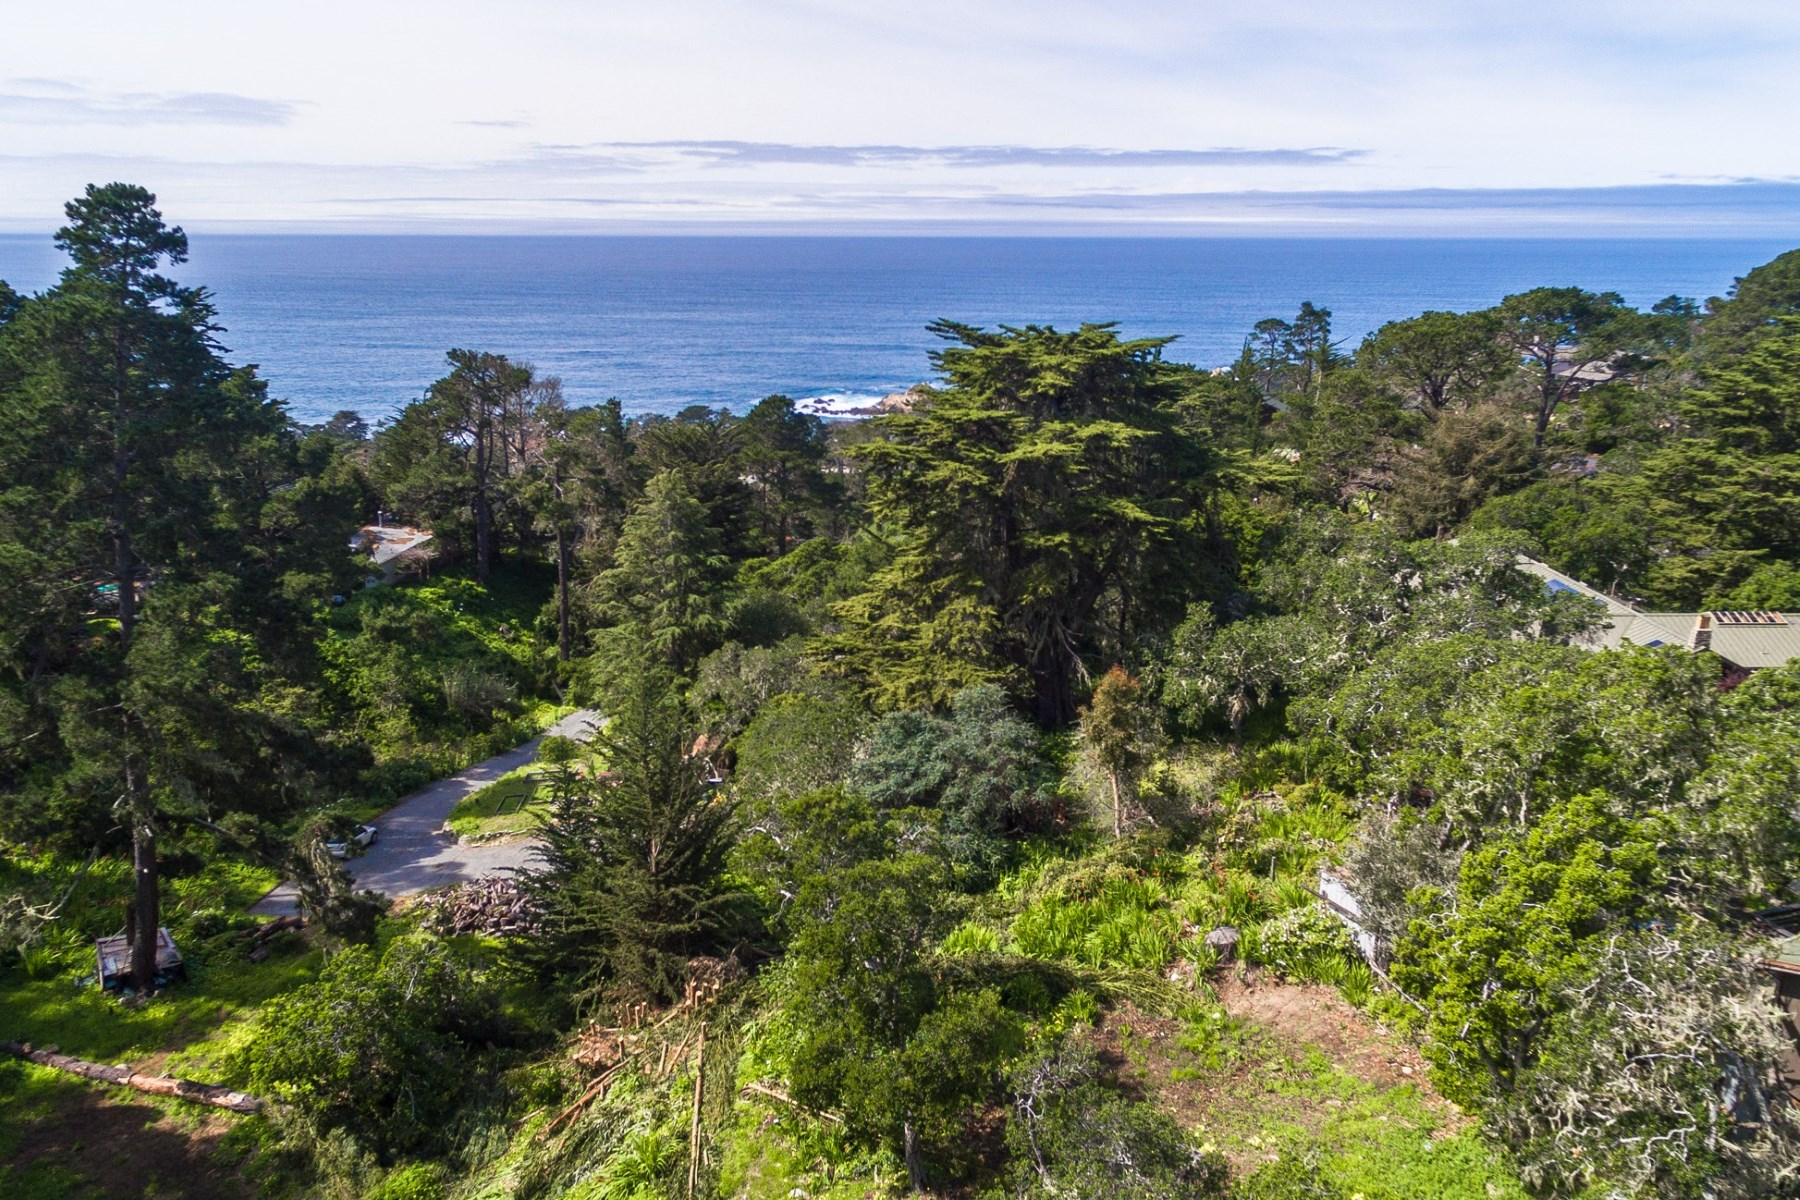 Land for Sale at Two Vacant Lots in Carmel Highlands 184 San Remo Road Carmel Highlands, California 93923 United States